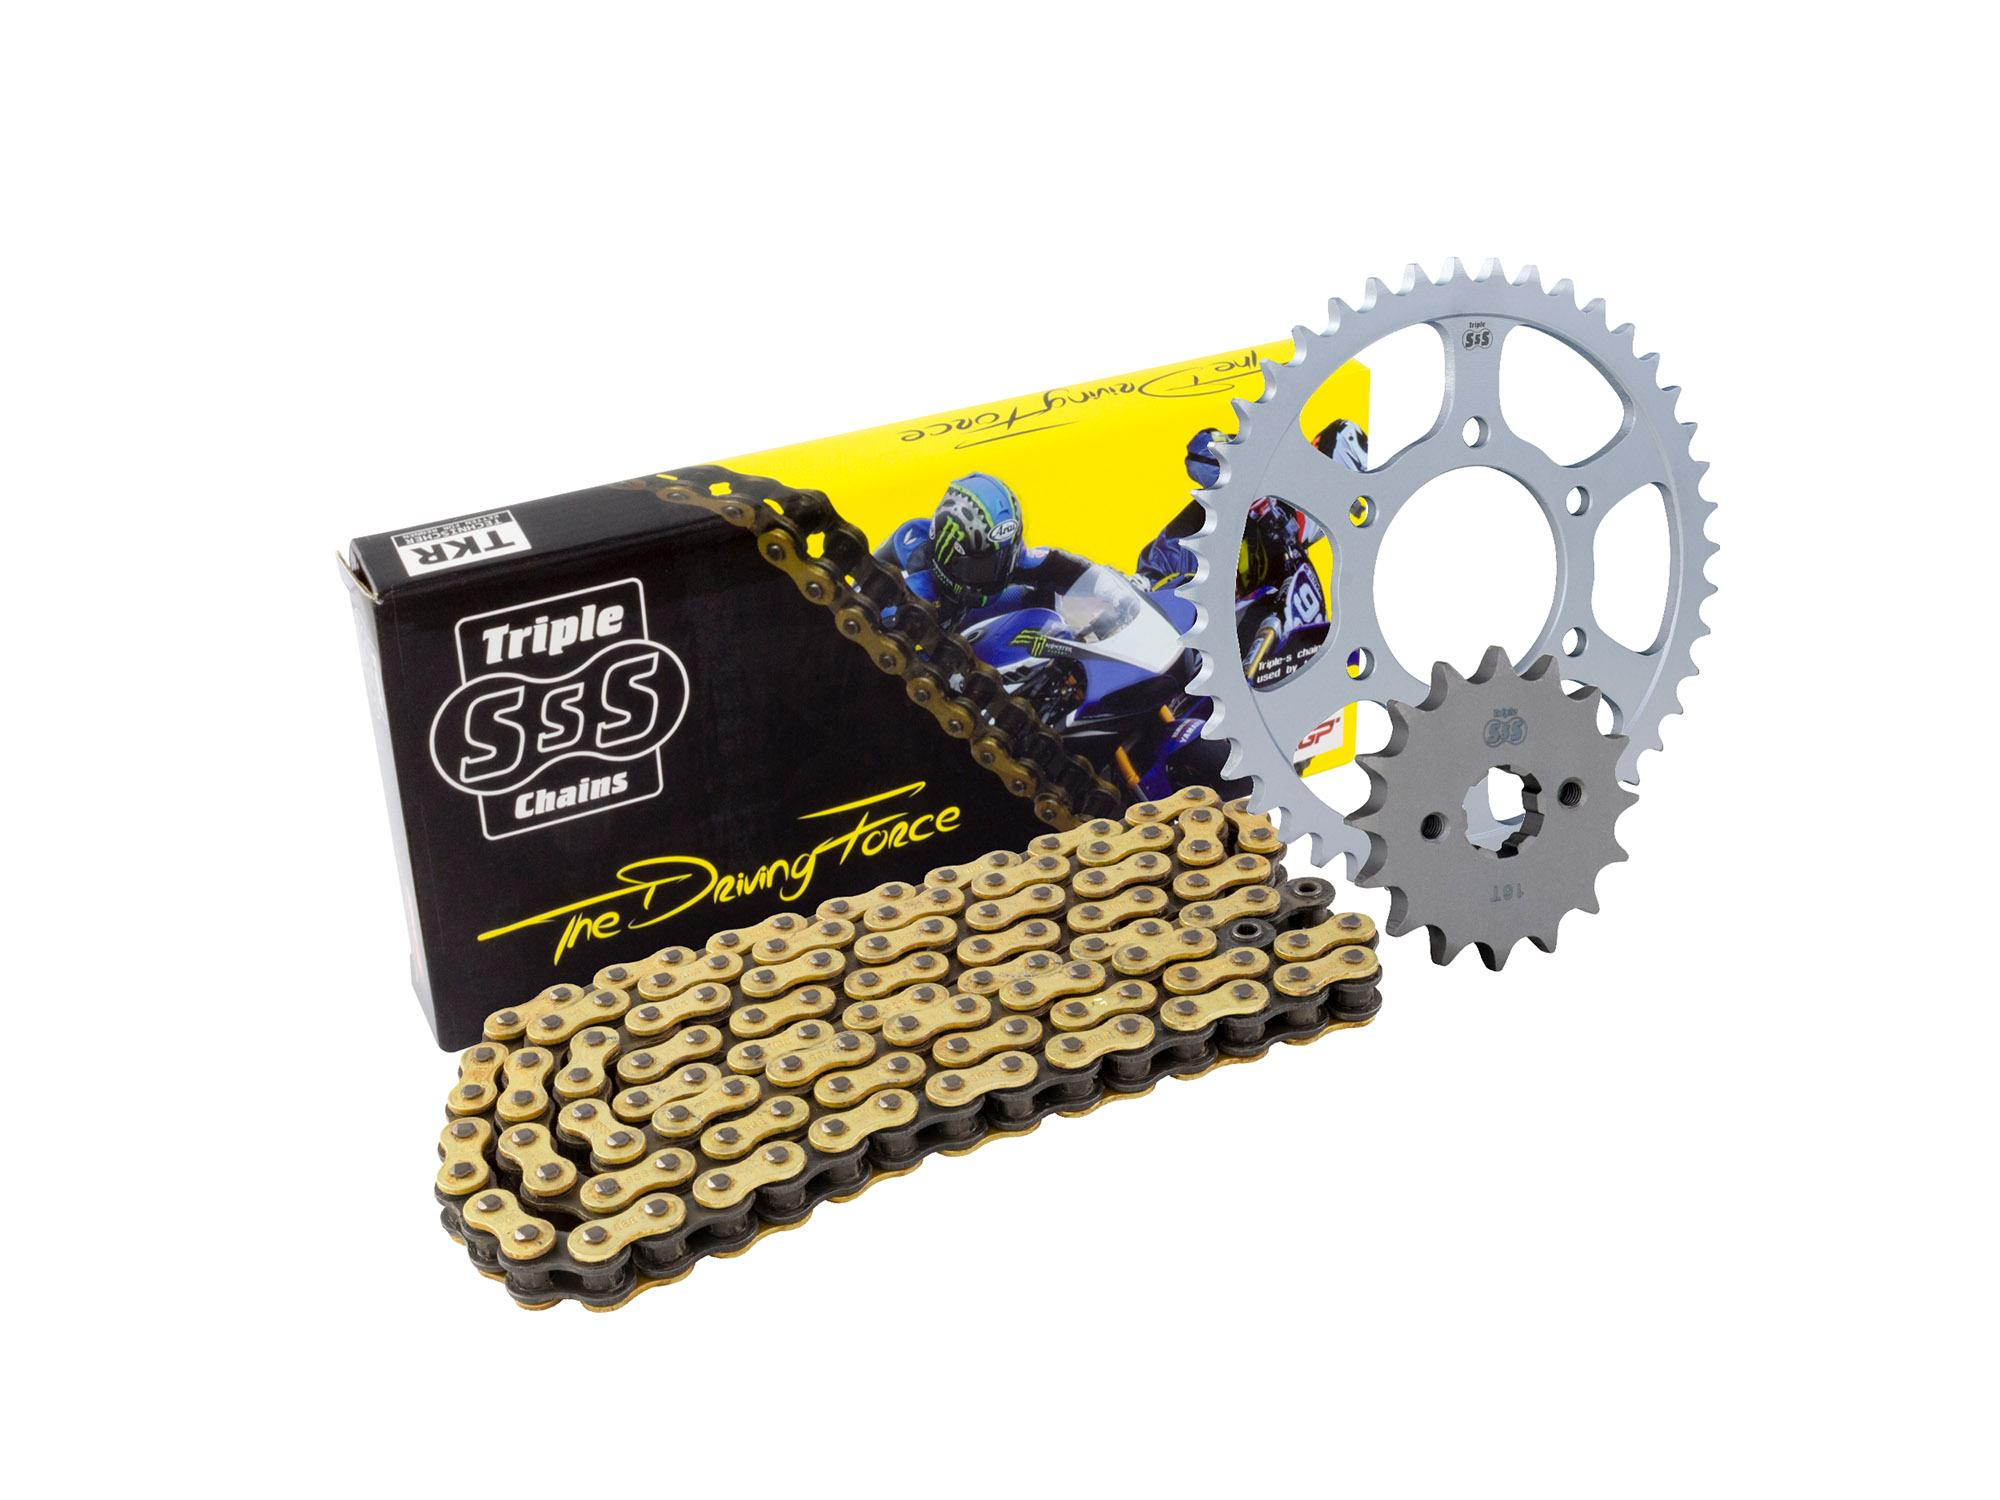 Honda VTR1000 SP-1 00-01 Chain & Sprocket Kit: 16T Front, 40T Rear, HD O-Ring Gold Chain 530H 104Link